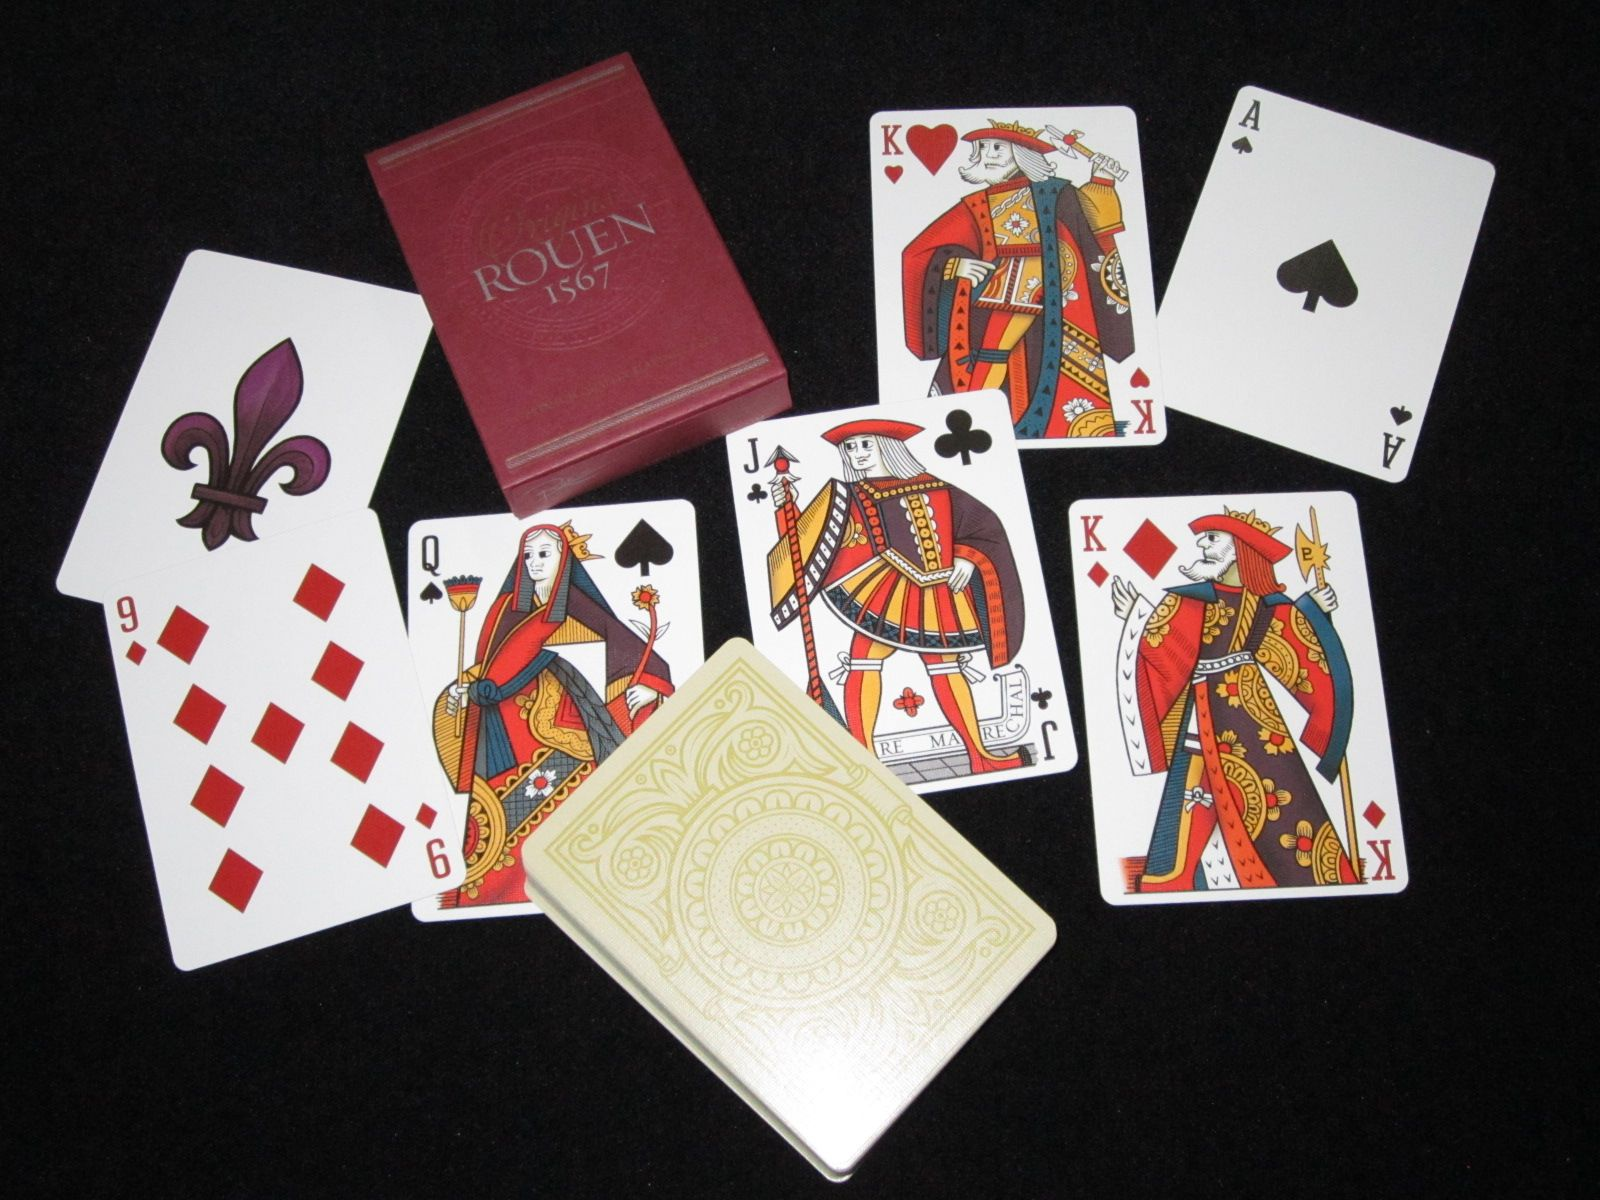 Table games such as cards and dice became synonymous with